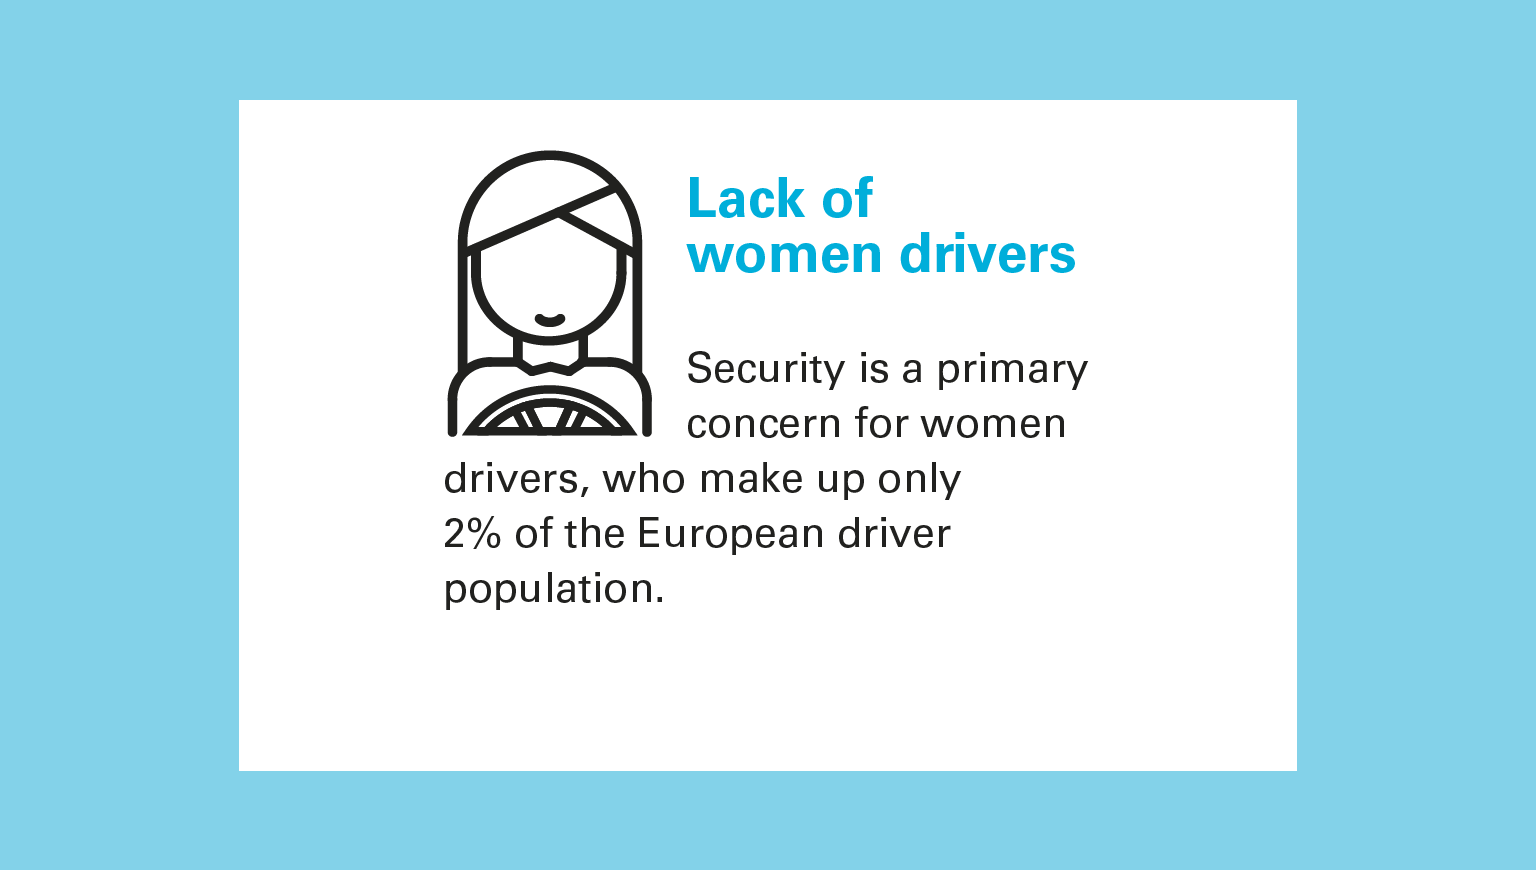 Lack of women drivers